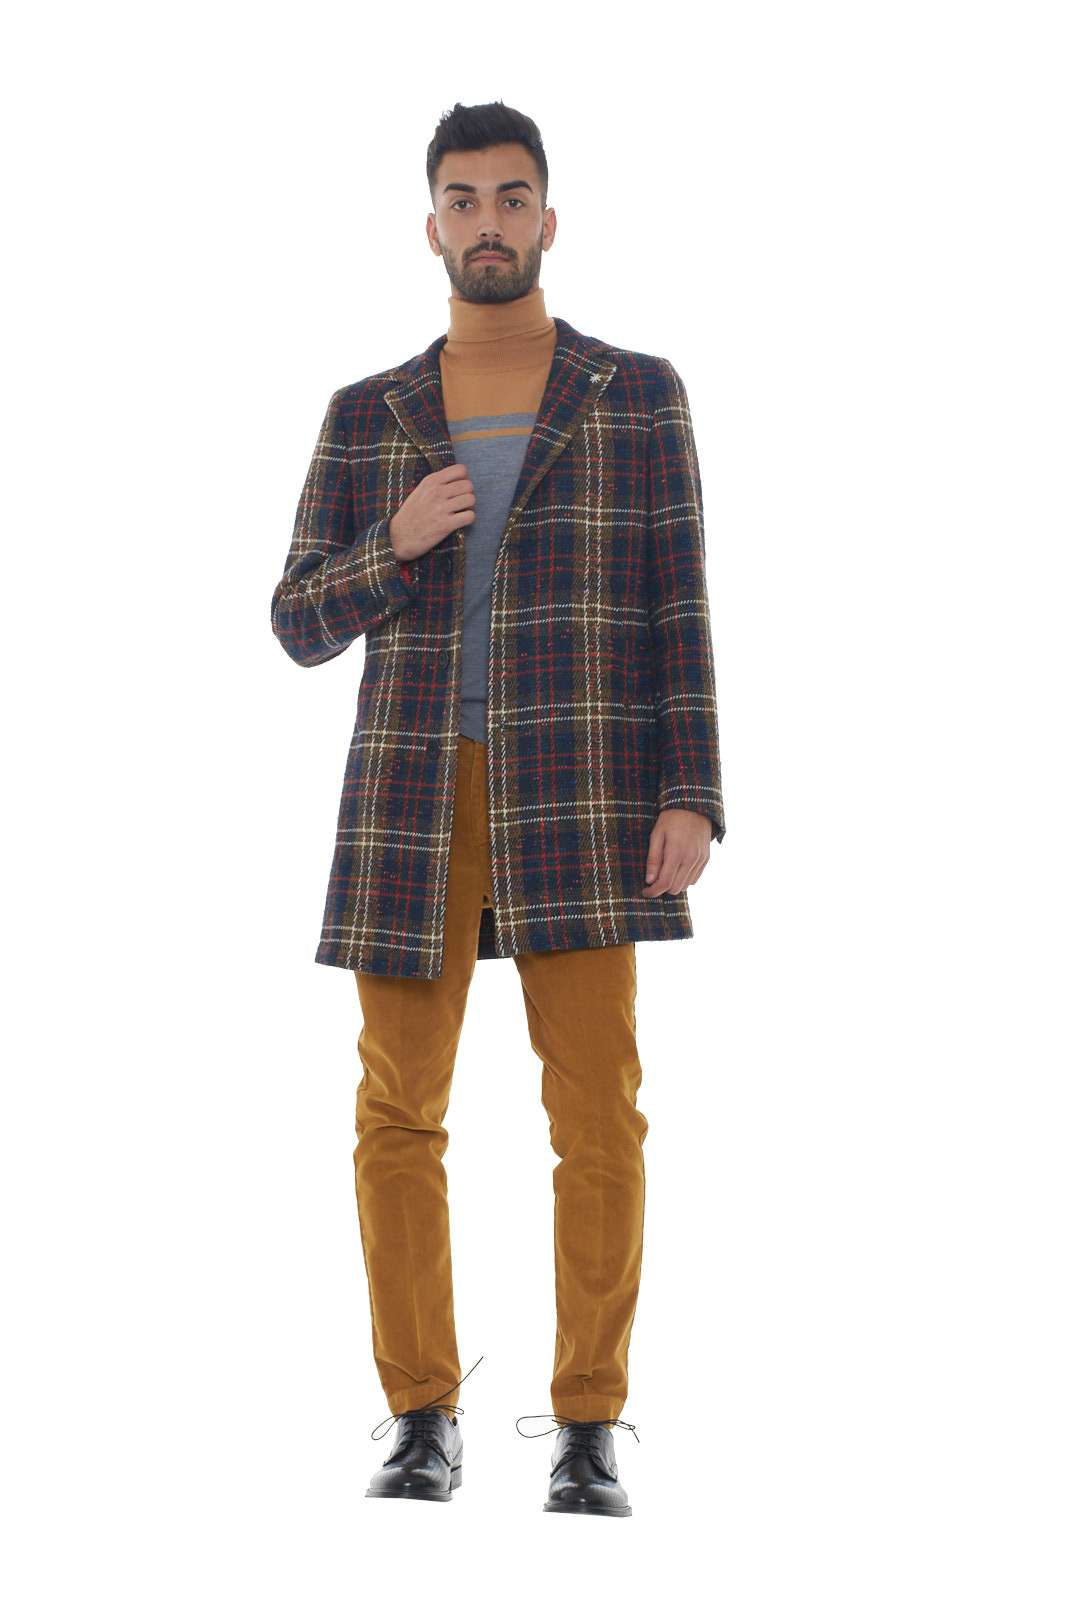 https://www.parmax.com/media/catalog/product/a/i/AI-outlet_parmax-cappotto-uomo-Manuel-Ritz-2732C4478%20193730-D.jpg